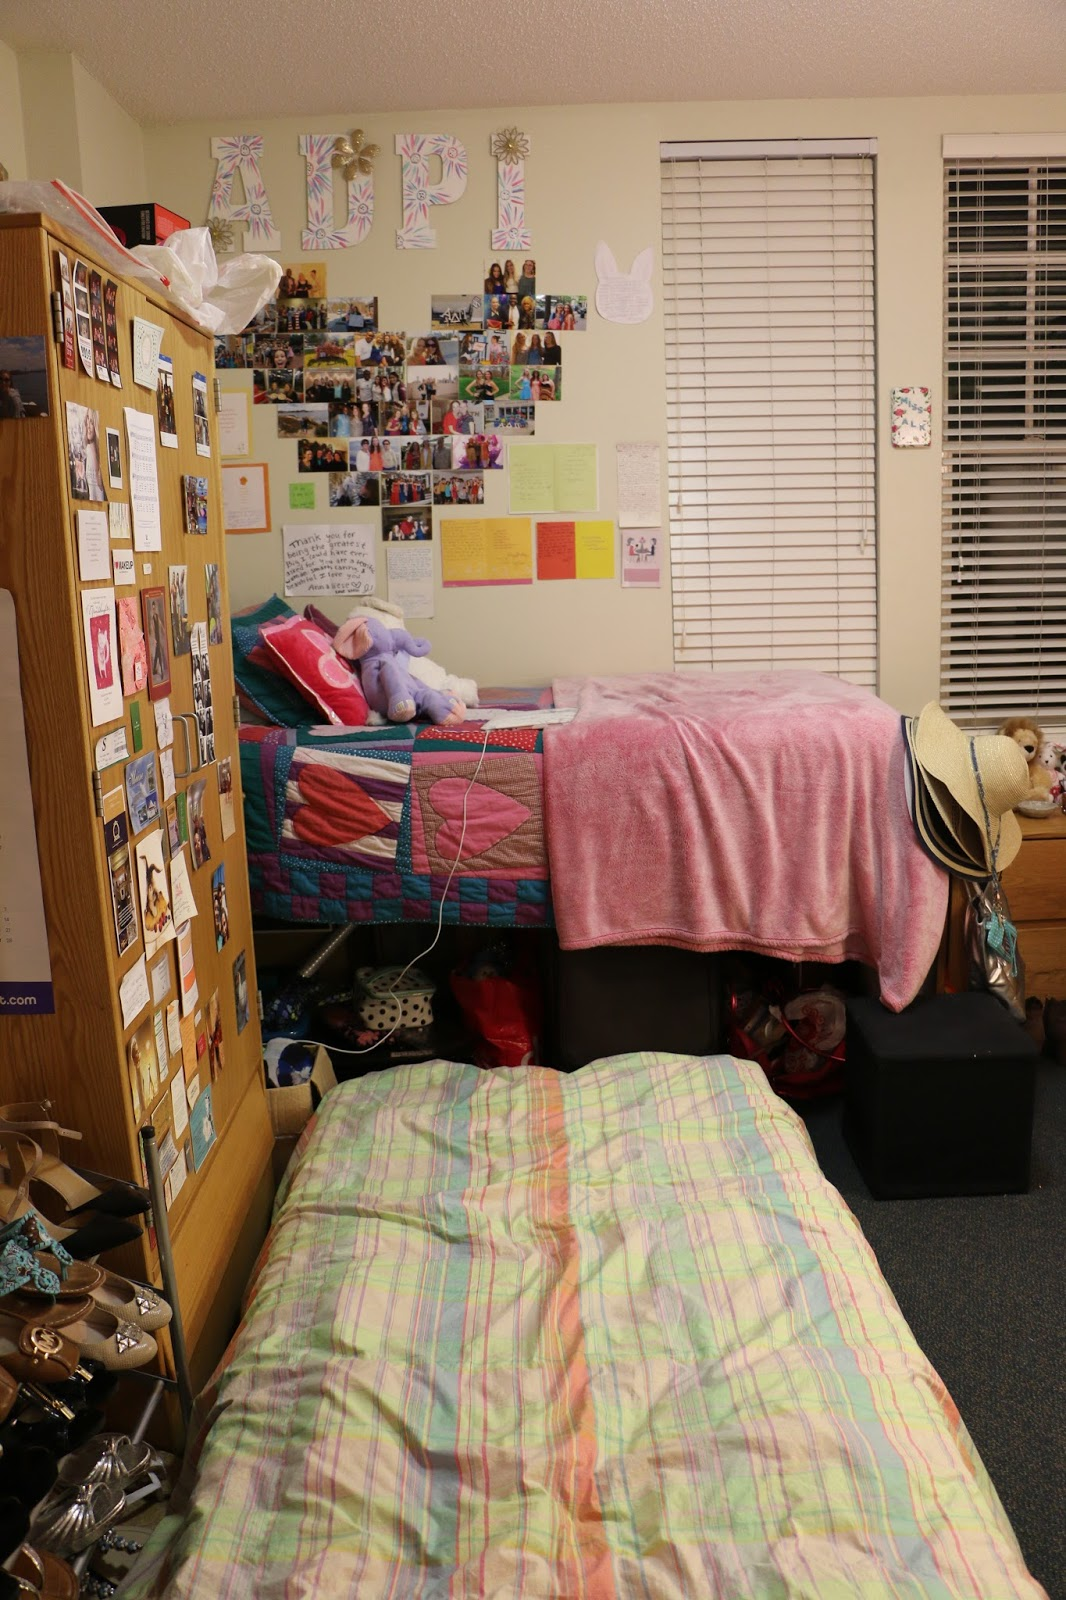 Senior Year Dorm Room Tour + 4 Reasons Why I'm Glad I Lived on Campus.